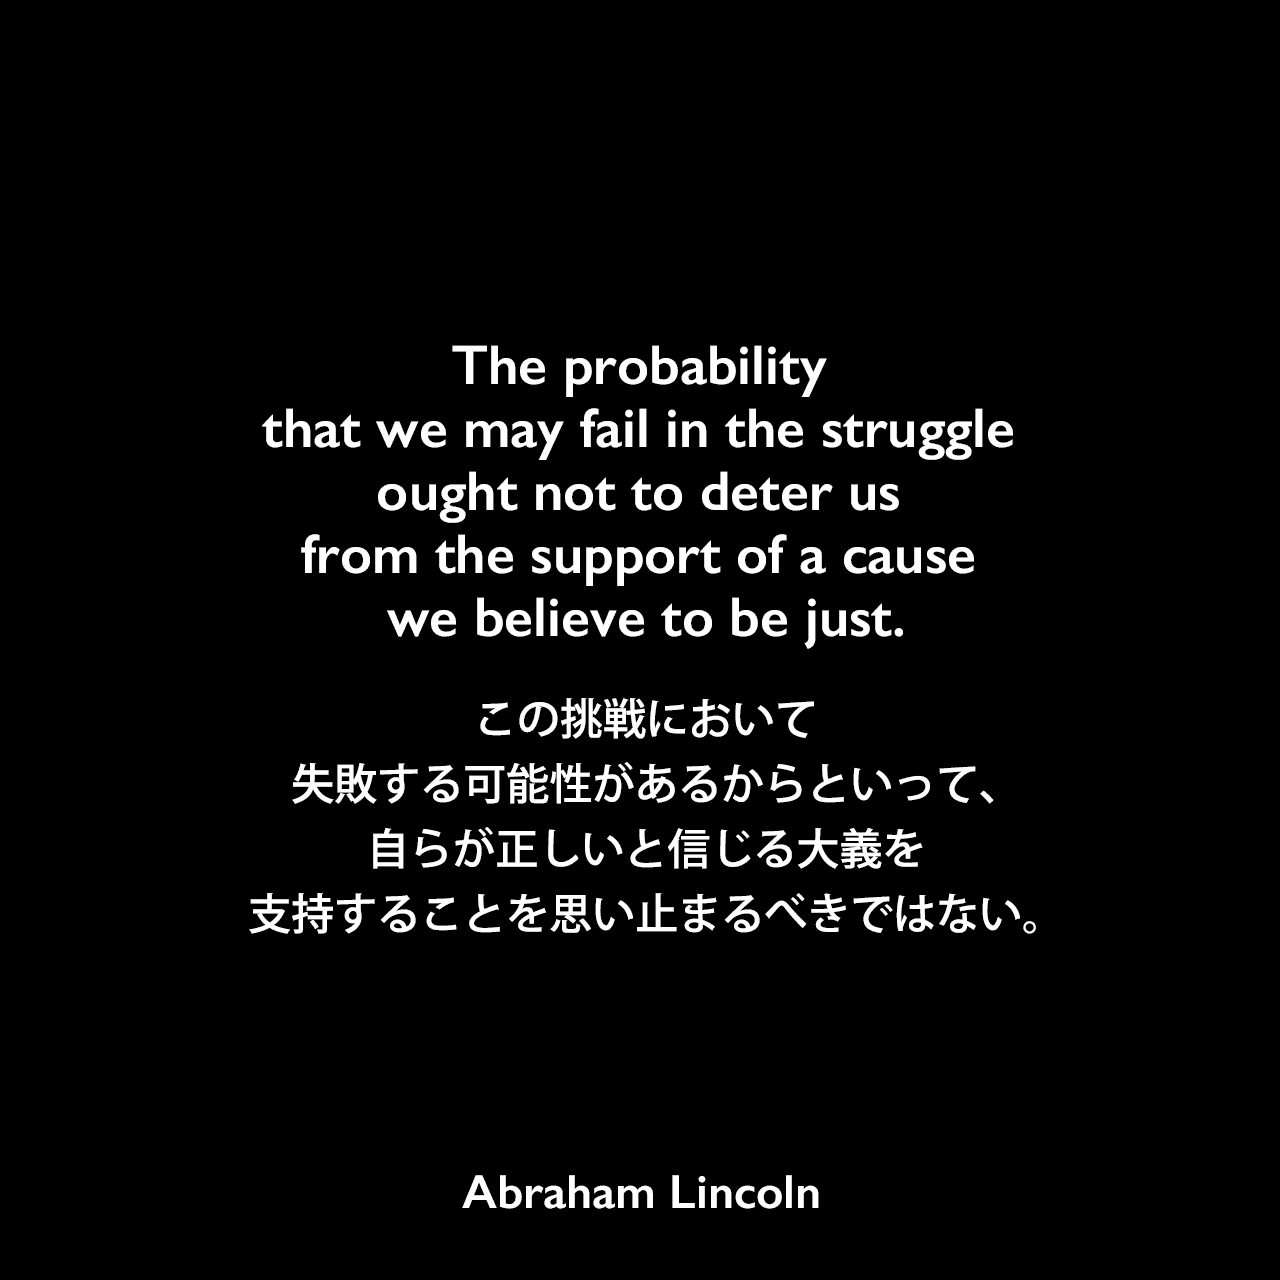 The probability that we may fail in the struggle ought not to deter us from the support of a cause we believe to be just.この挑戦において失敗する可能性があるからといって、自らが正しいと信じる大義を支持することを思い止まるべきではない。- リンカーンのスピーチ (1839年)より